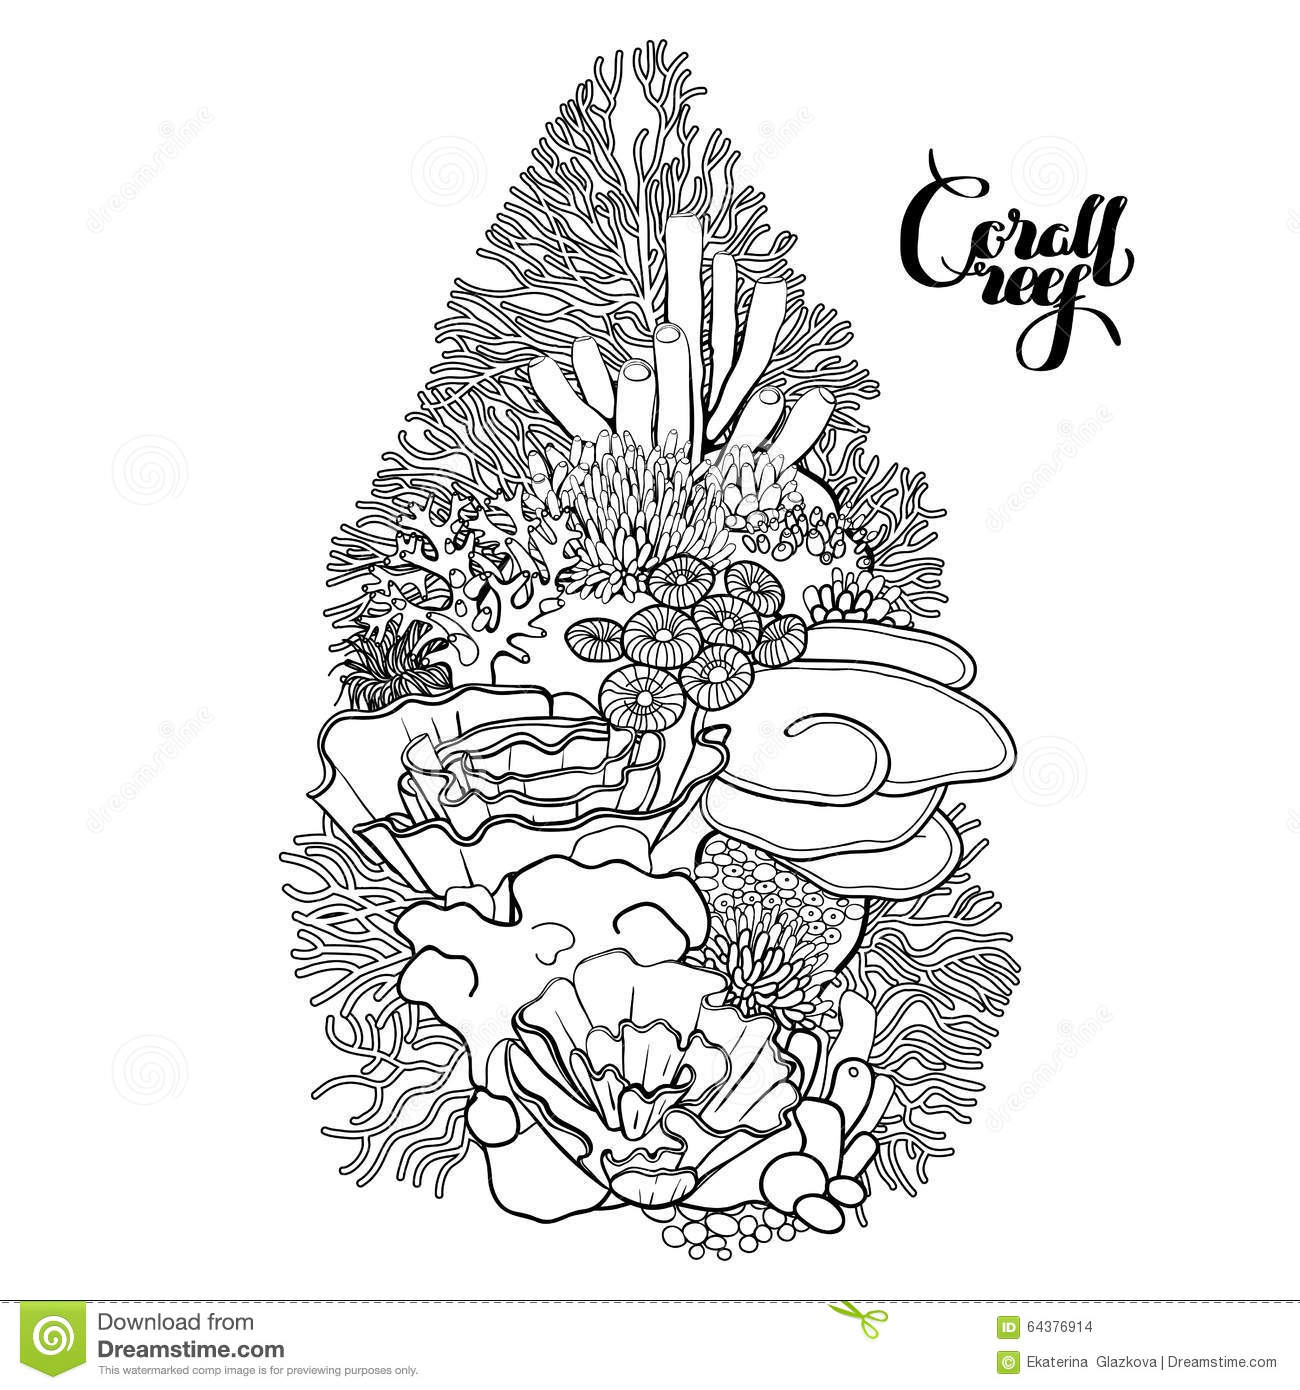 ocean plants coloring pages free - photo#30